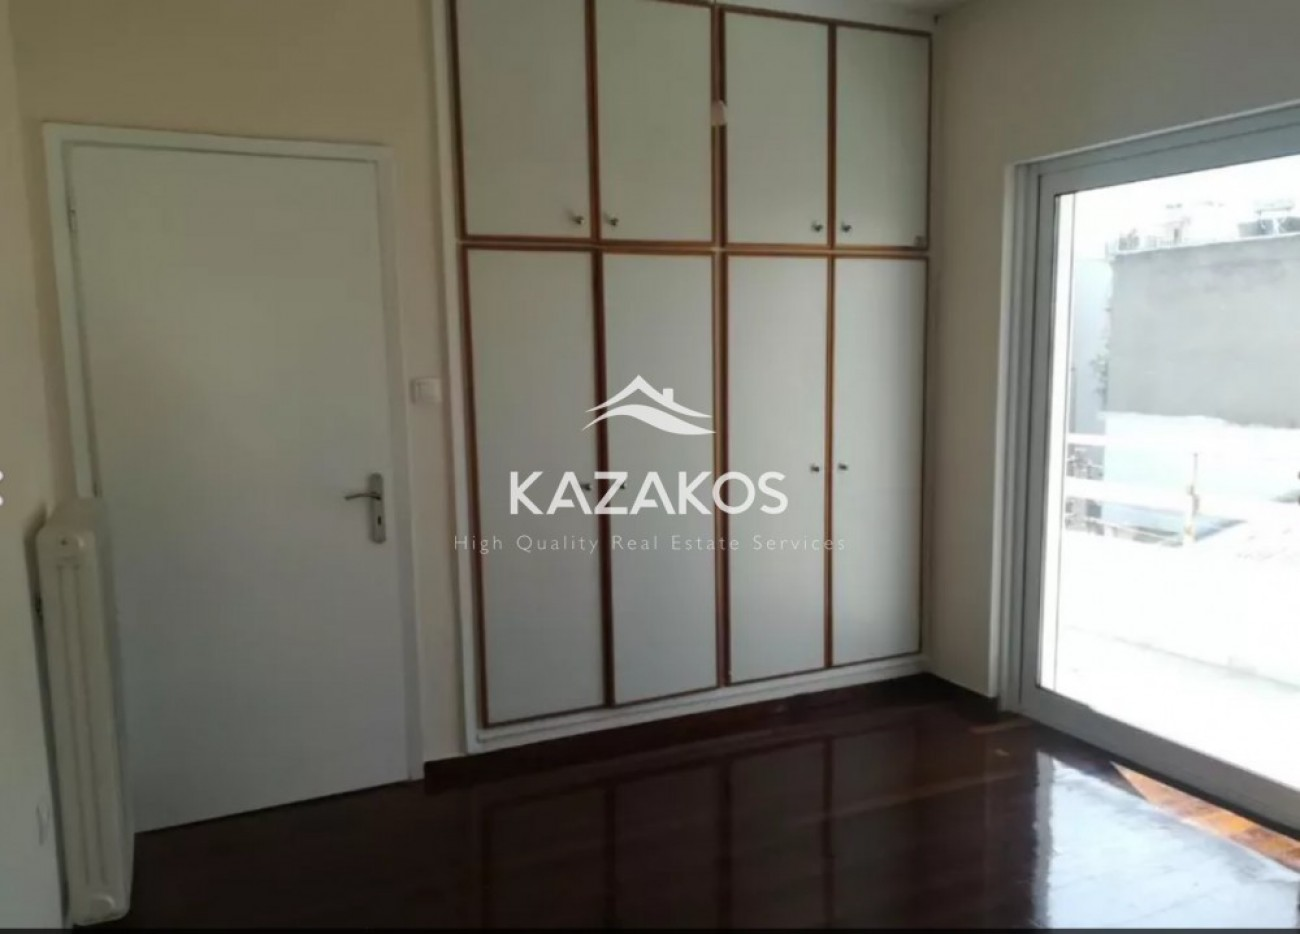 Apartment for Sale in Rizoupoli, Athens City Center, Greece